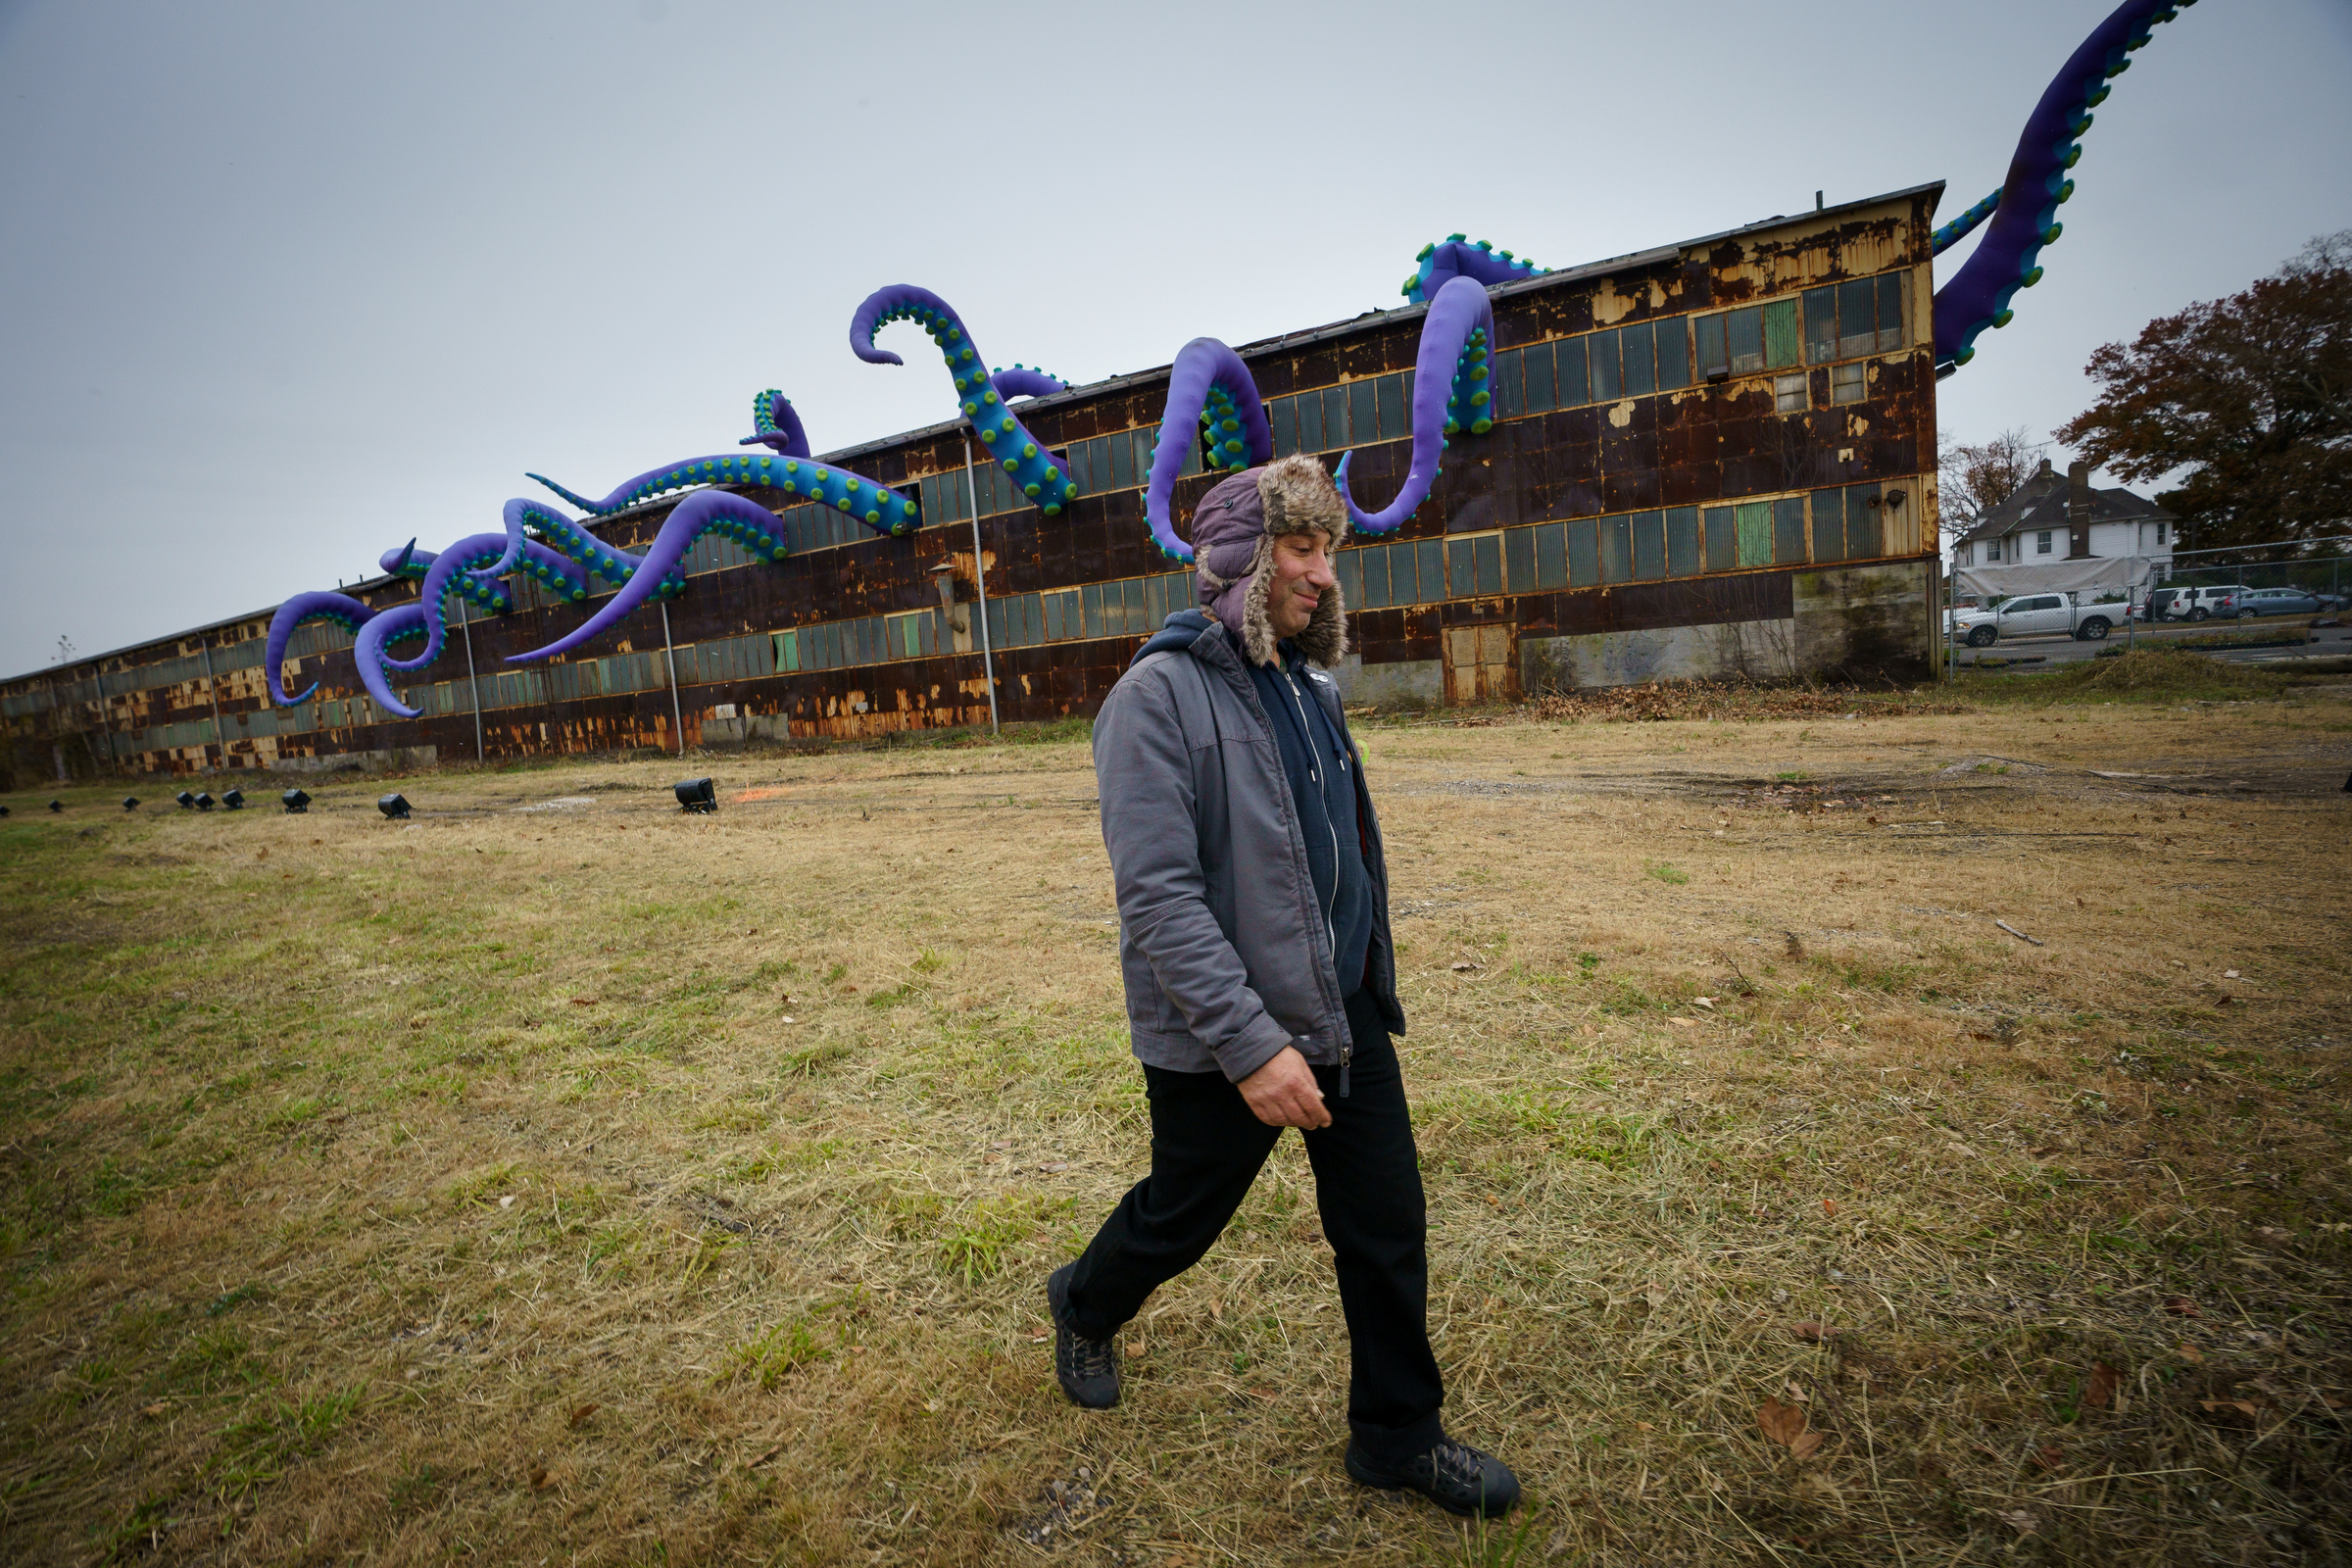 The maker and his massive monster installation.